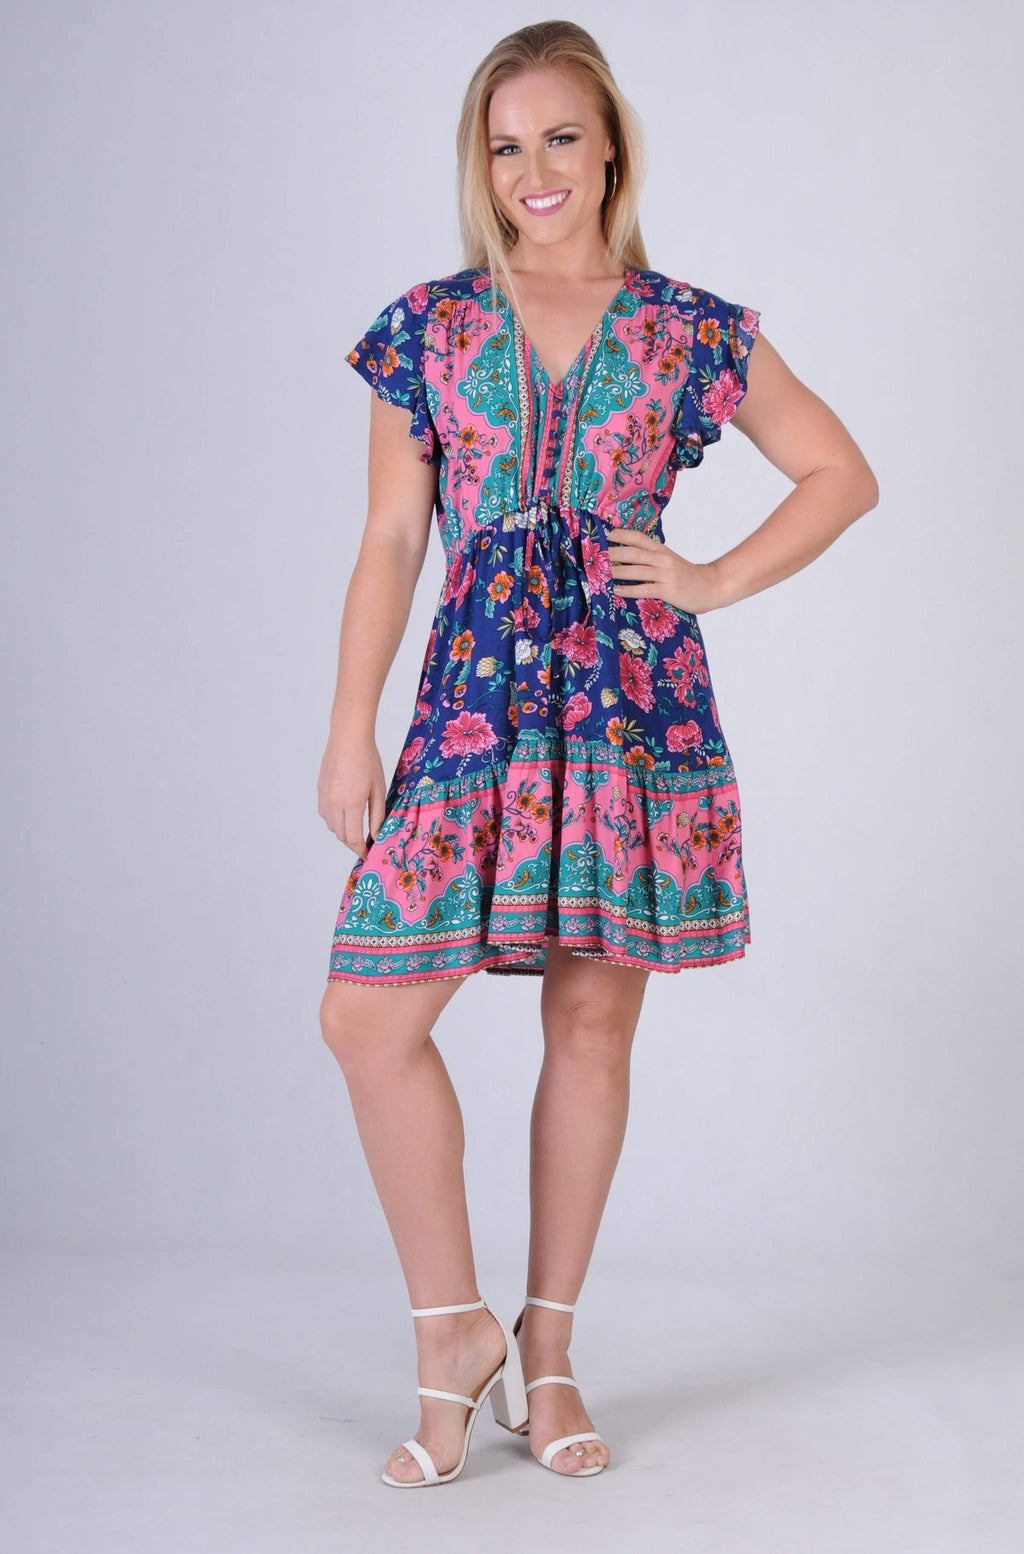 VJHD232 - TWIGGY DRESS - AMALFI NAVY BLOOM